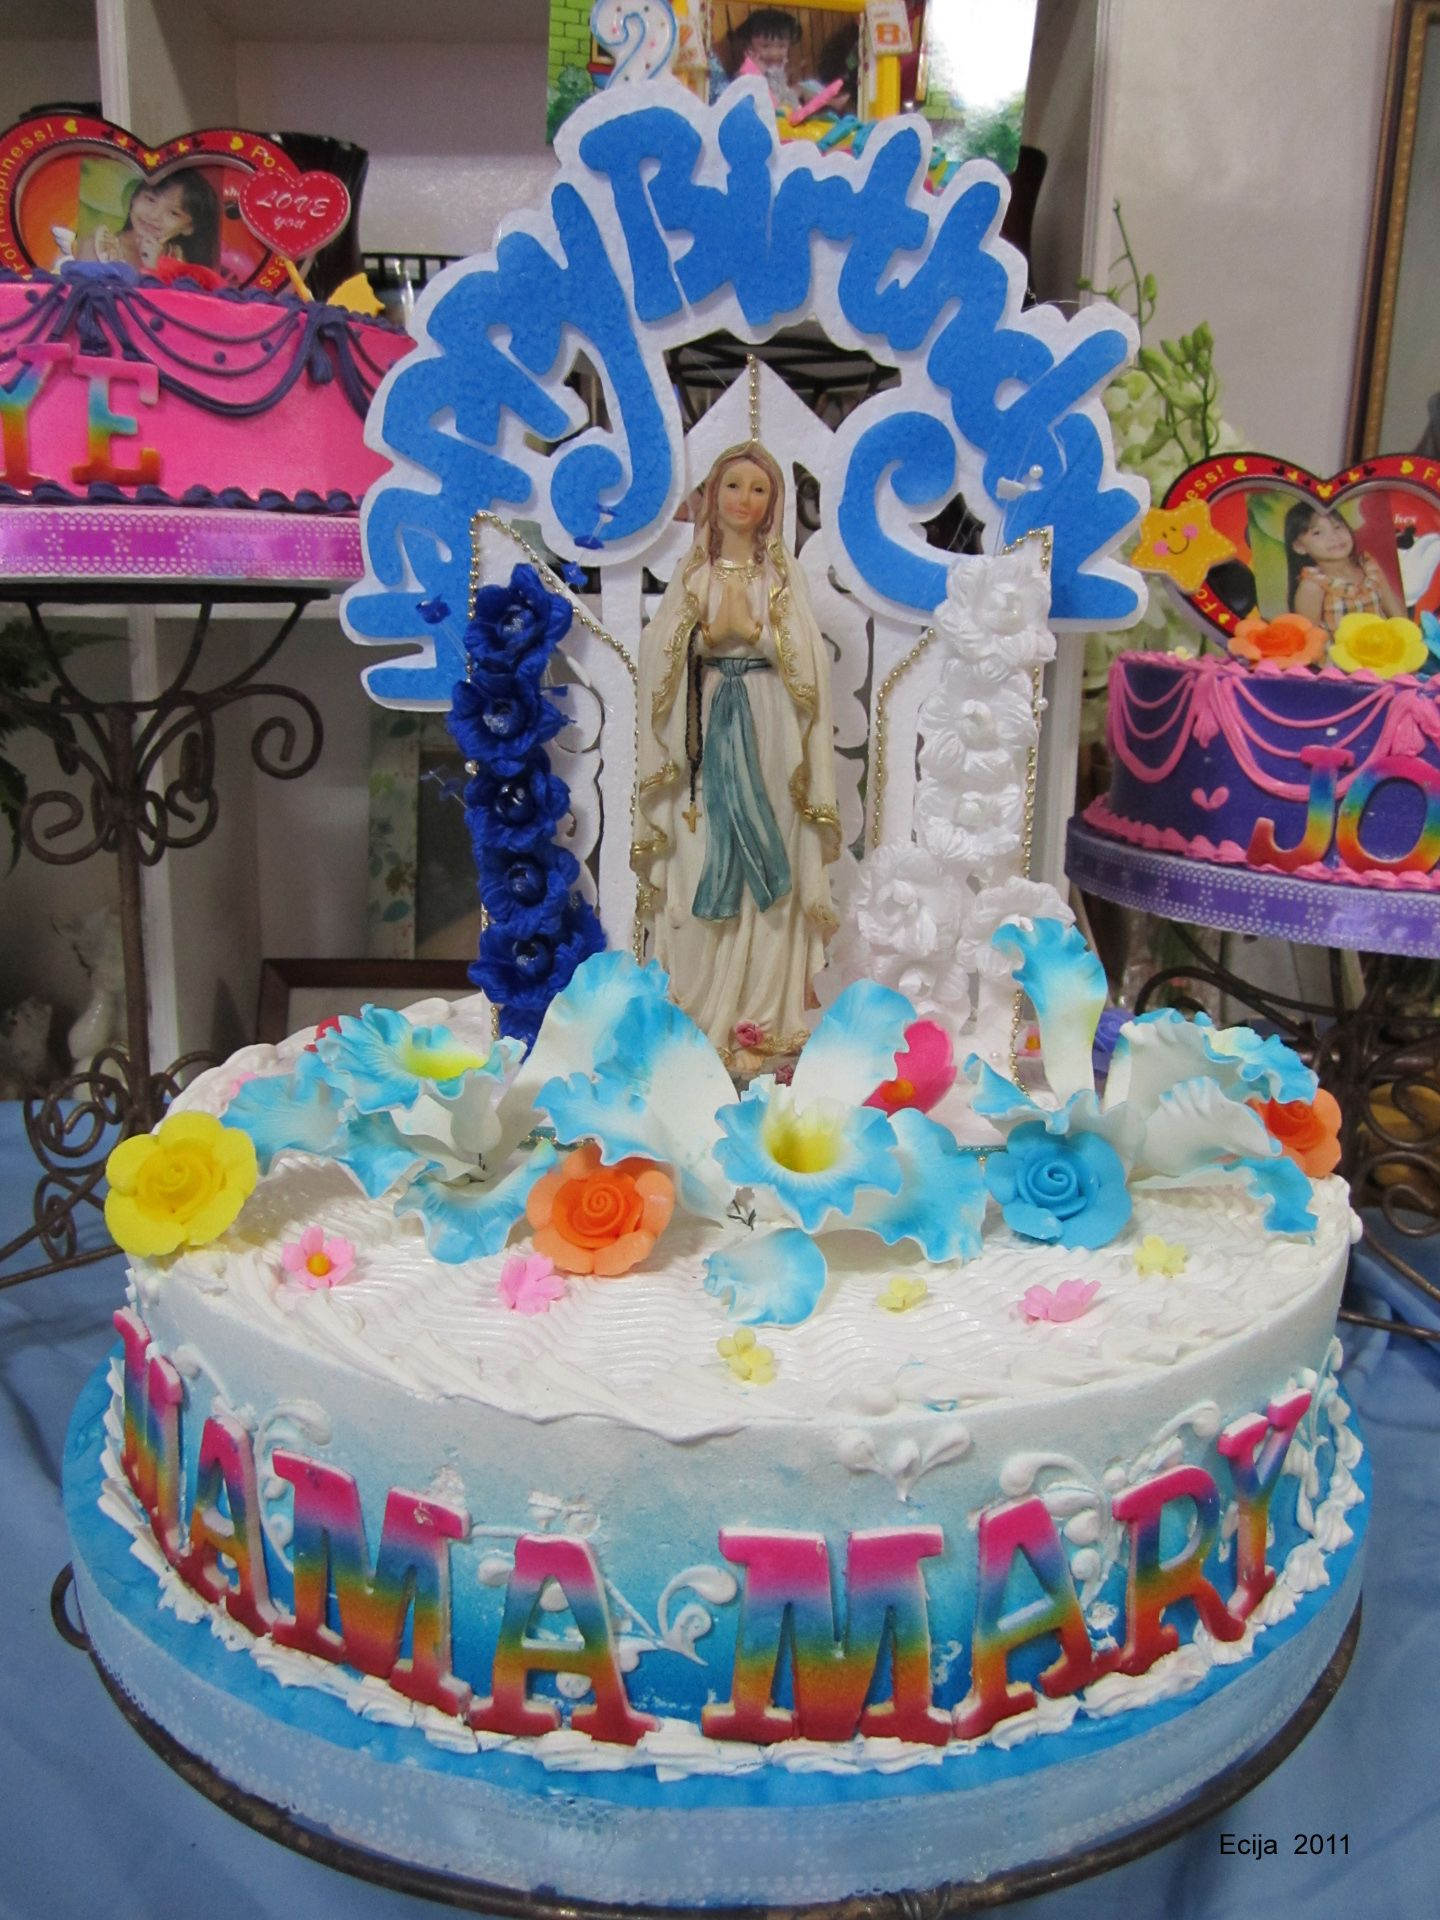 The Nativity of the Blessed Virgin Mary has been